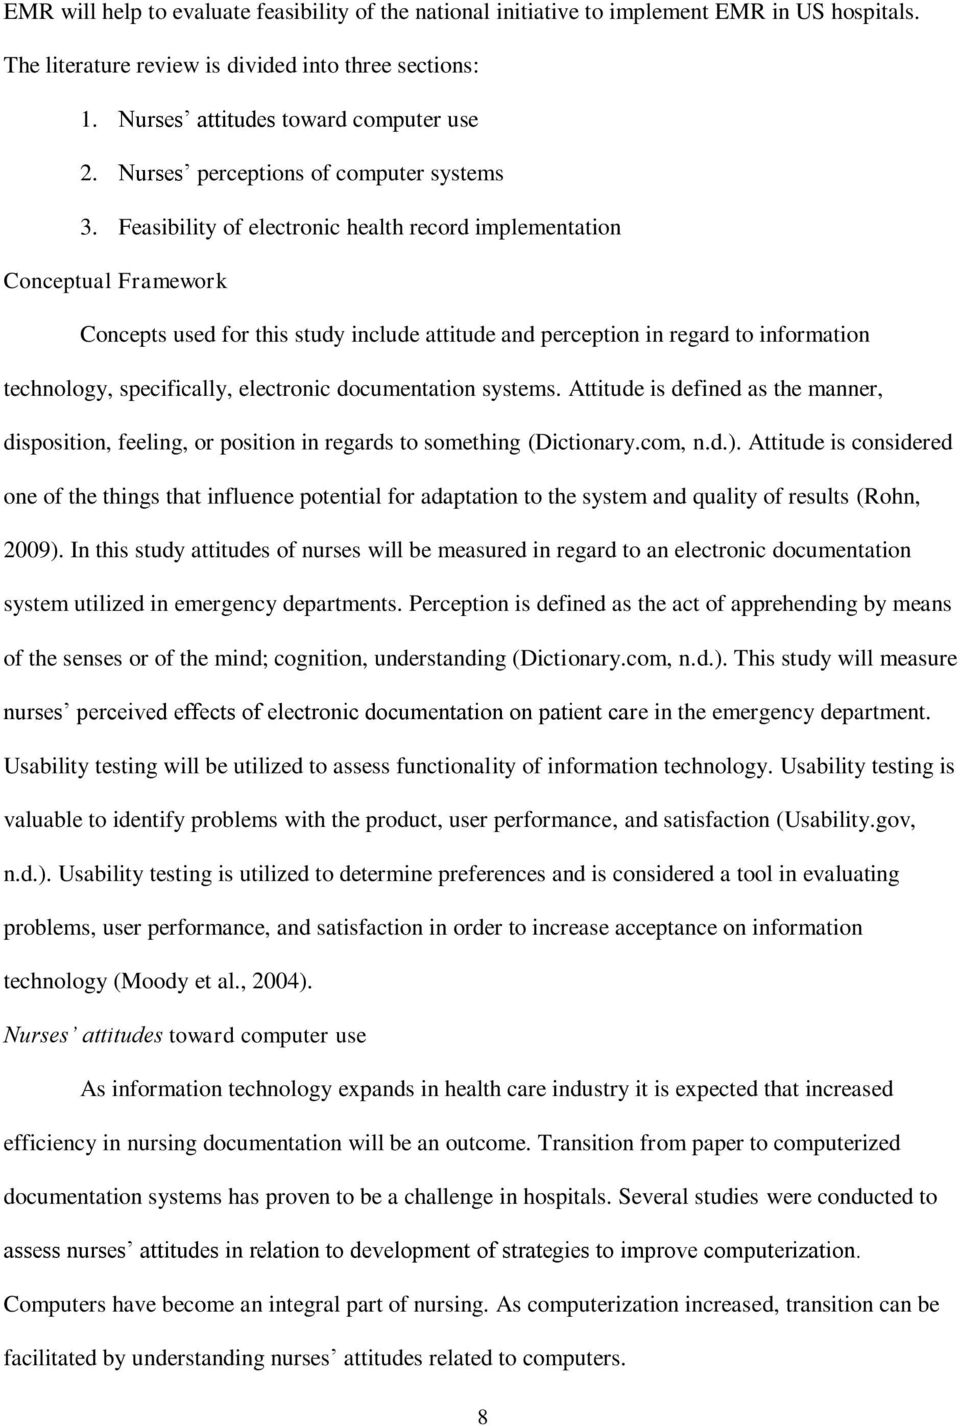 Feasibility of electronic health record implementation Conceptual Framework Concepts used for this study include attitude and perception in regard to information technology, specifically, electronic